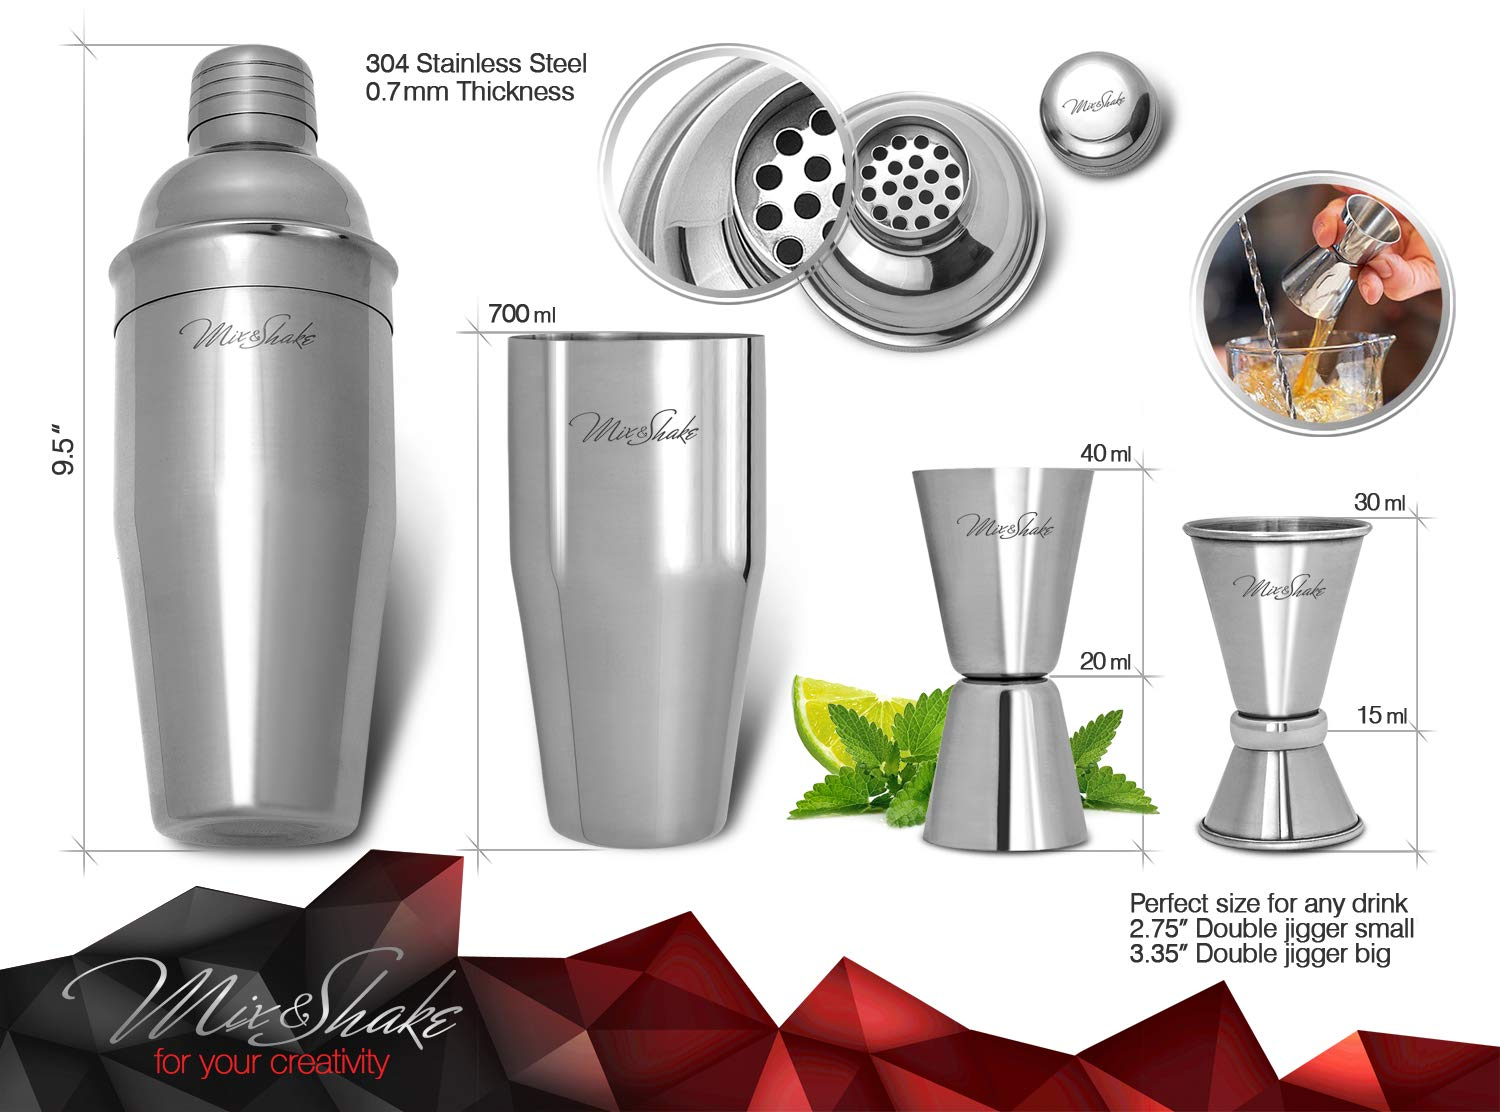 Cocktail Shaker - Cobbler Shaker - Bartender Kit - Bar Supplies - Drink Mixer - Martini Shaker Set-11 Piece Stainless Steel Cocktail Shaker Set With Strainer, Muddler, Two Jiggers, Bar Spoon,Ice Tongs by Mix&Shake (Image #3)